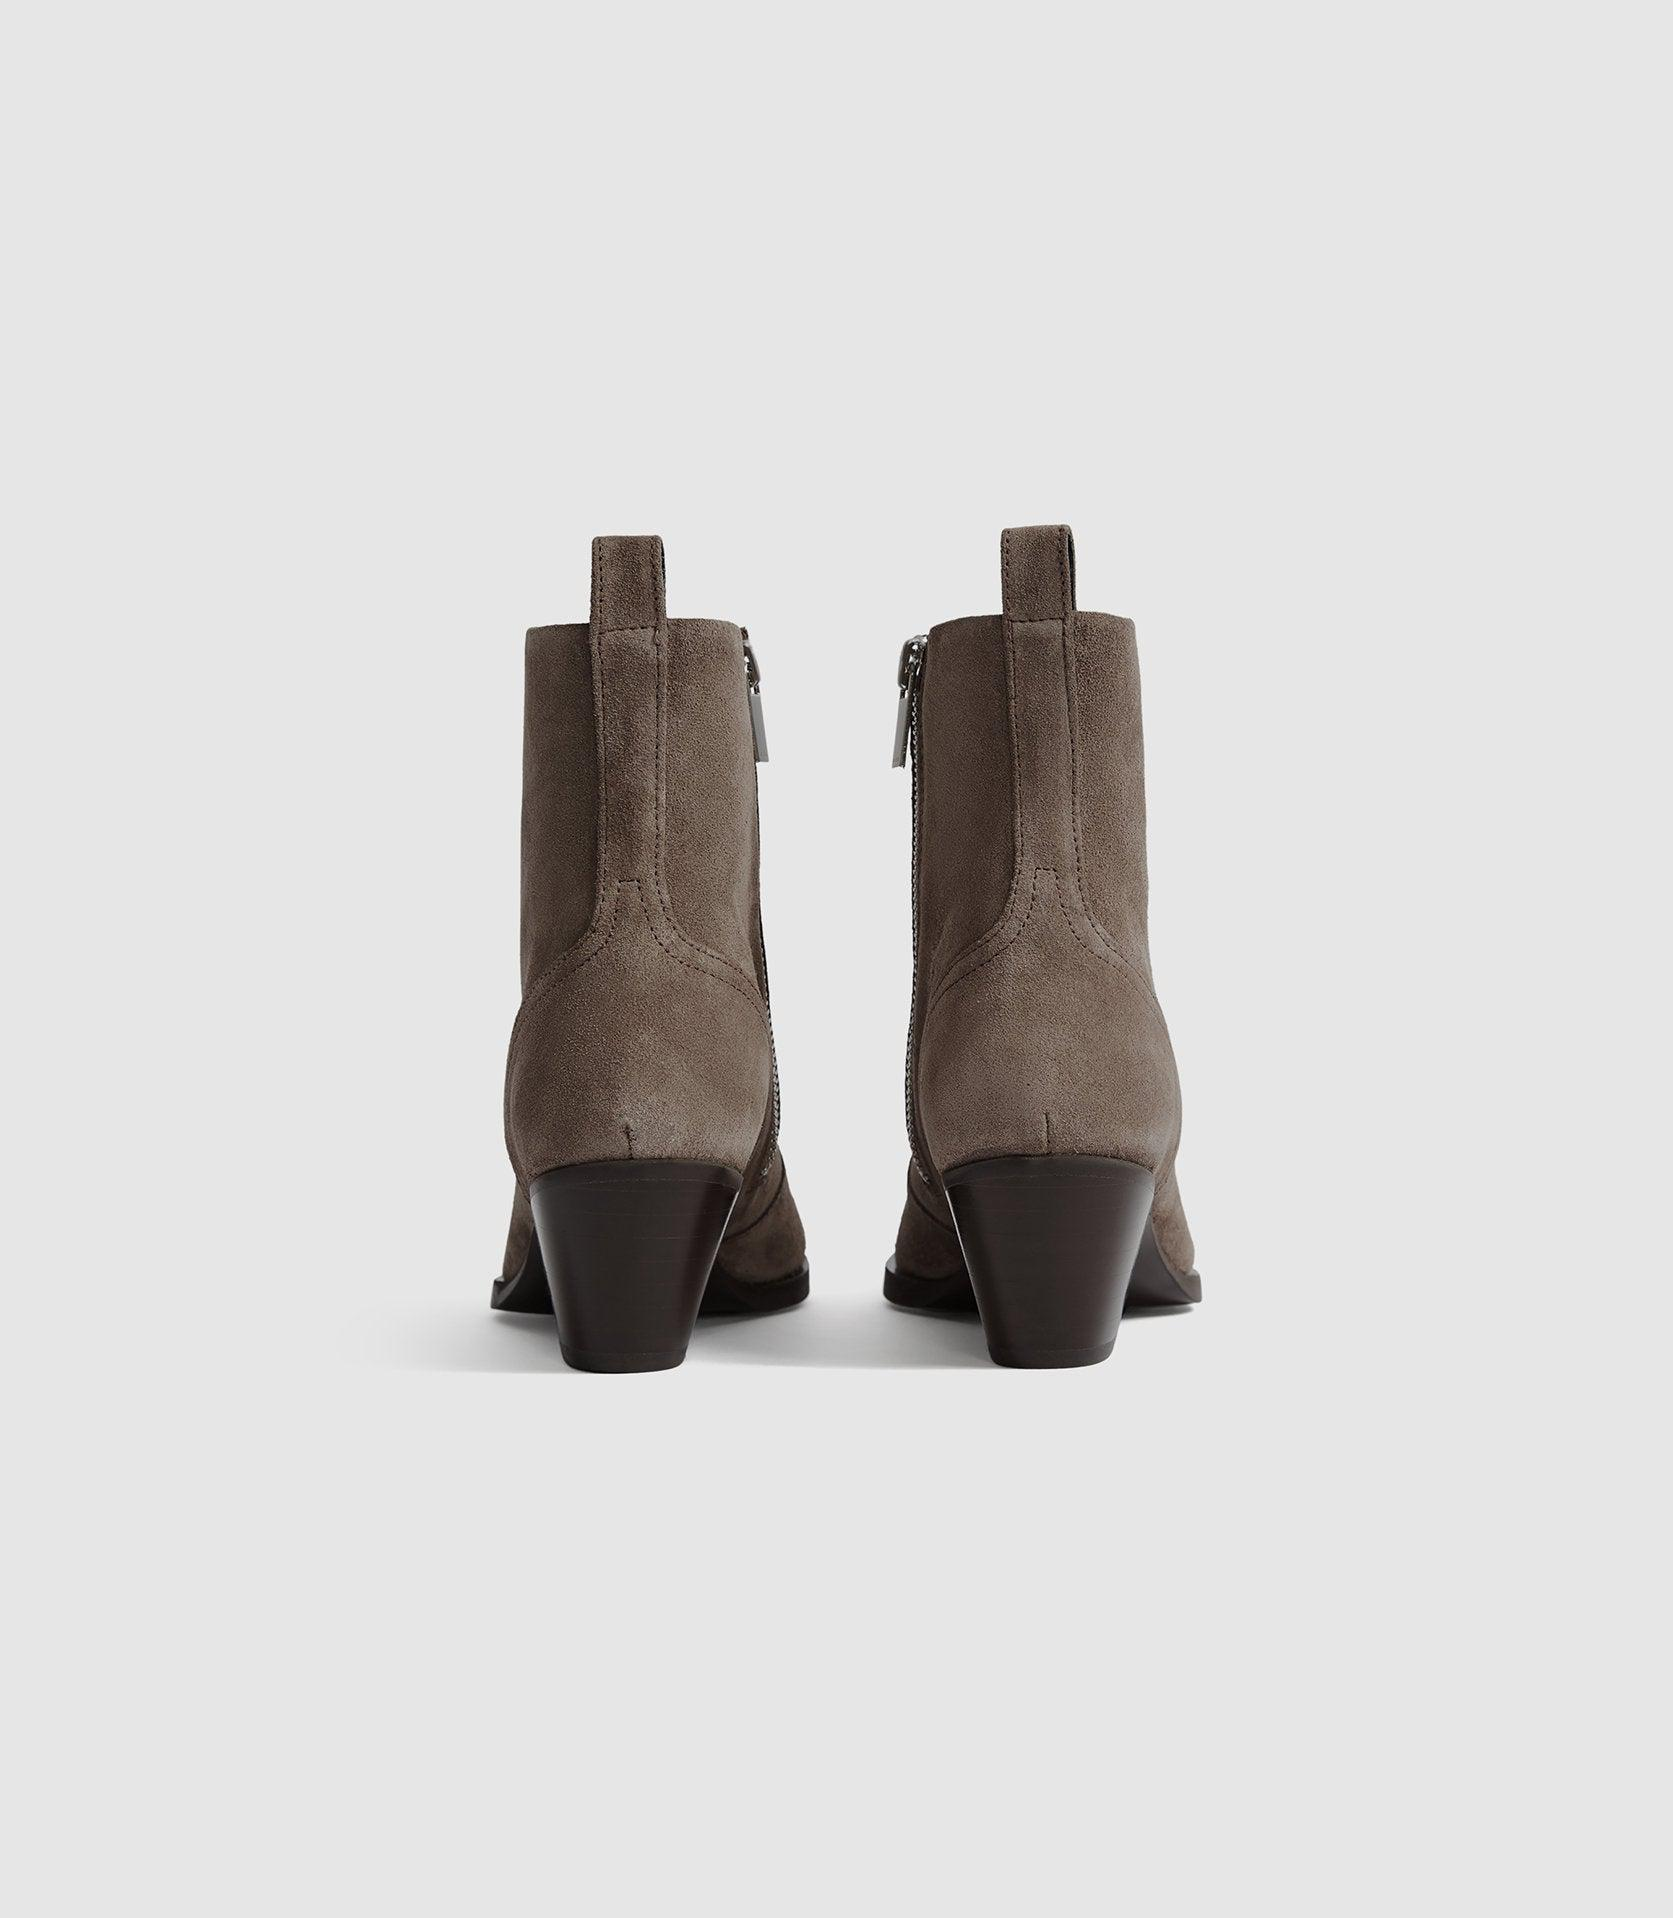 HAYWORTH SUEDE - SUEDE WESTERN ANKLE BOOTS 3